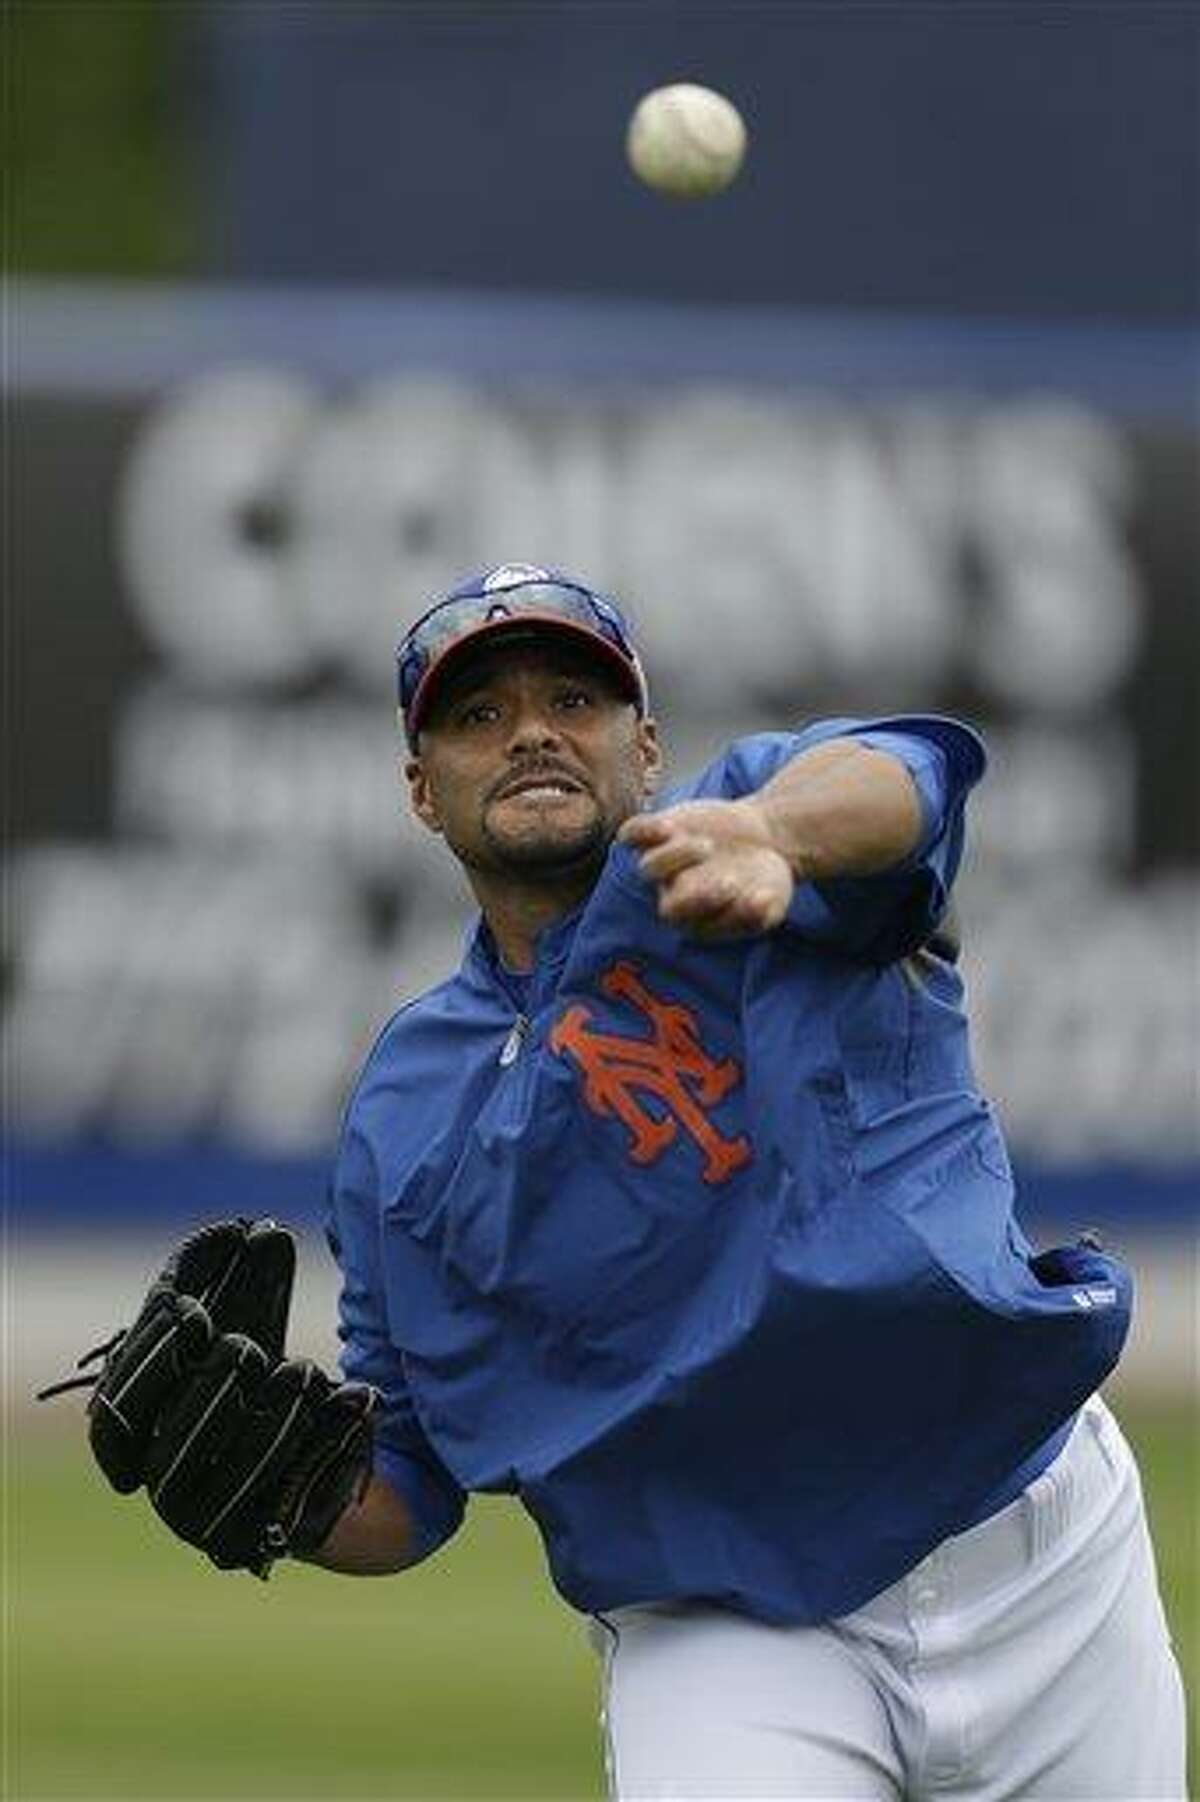 New York Mets starting pitcher Johan Santana throws while working out before an exhibition spring training baseball game Detroit Tigers, Friday, March 1, 2013, in Port St. Lucie, Fla. (AP Photo/Julio Cortez)